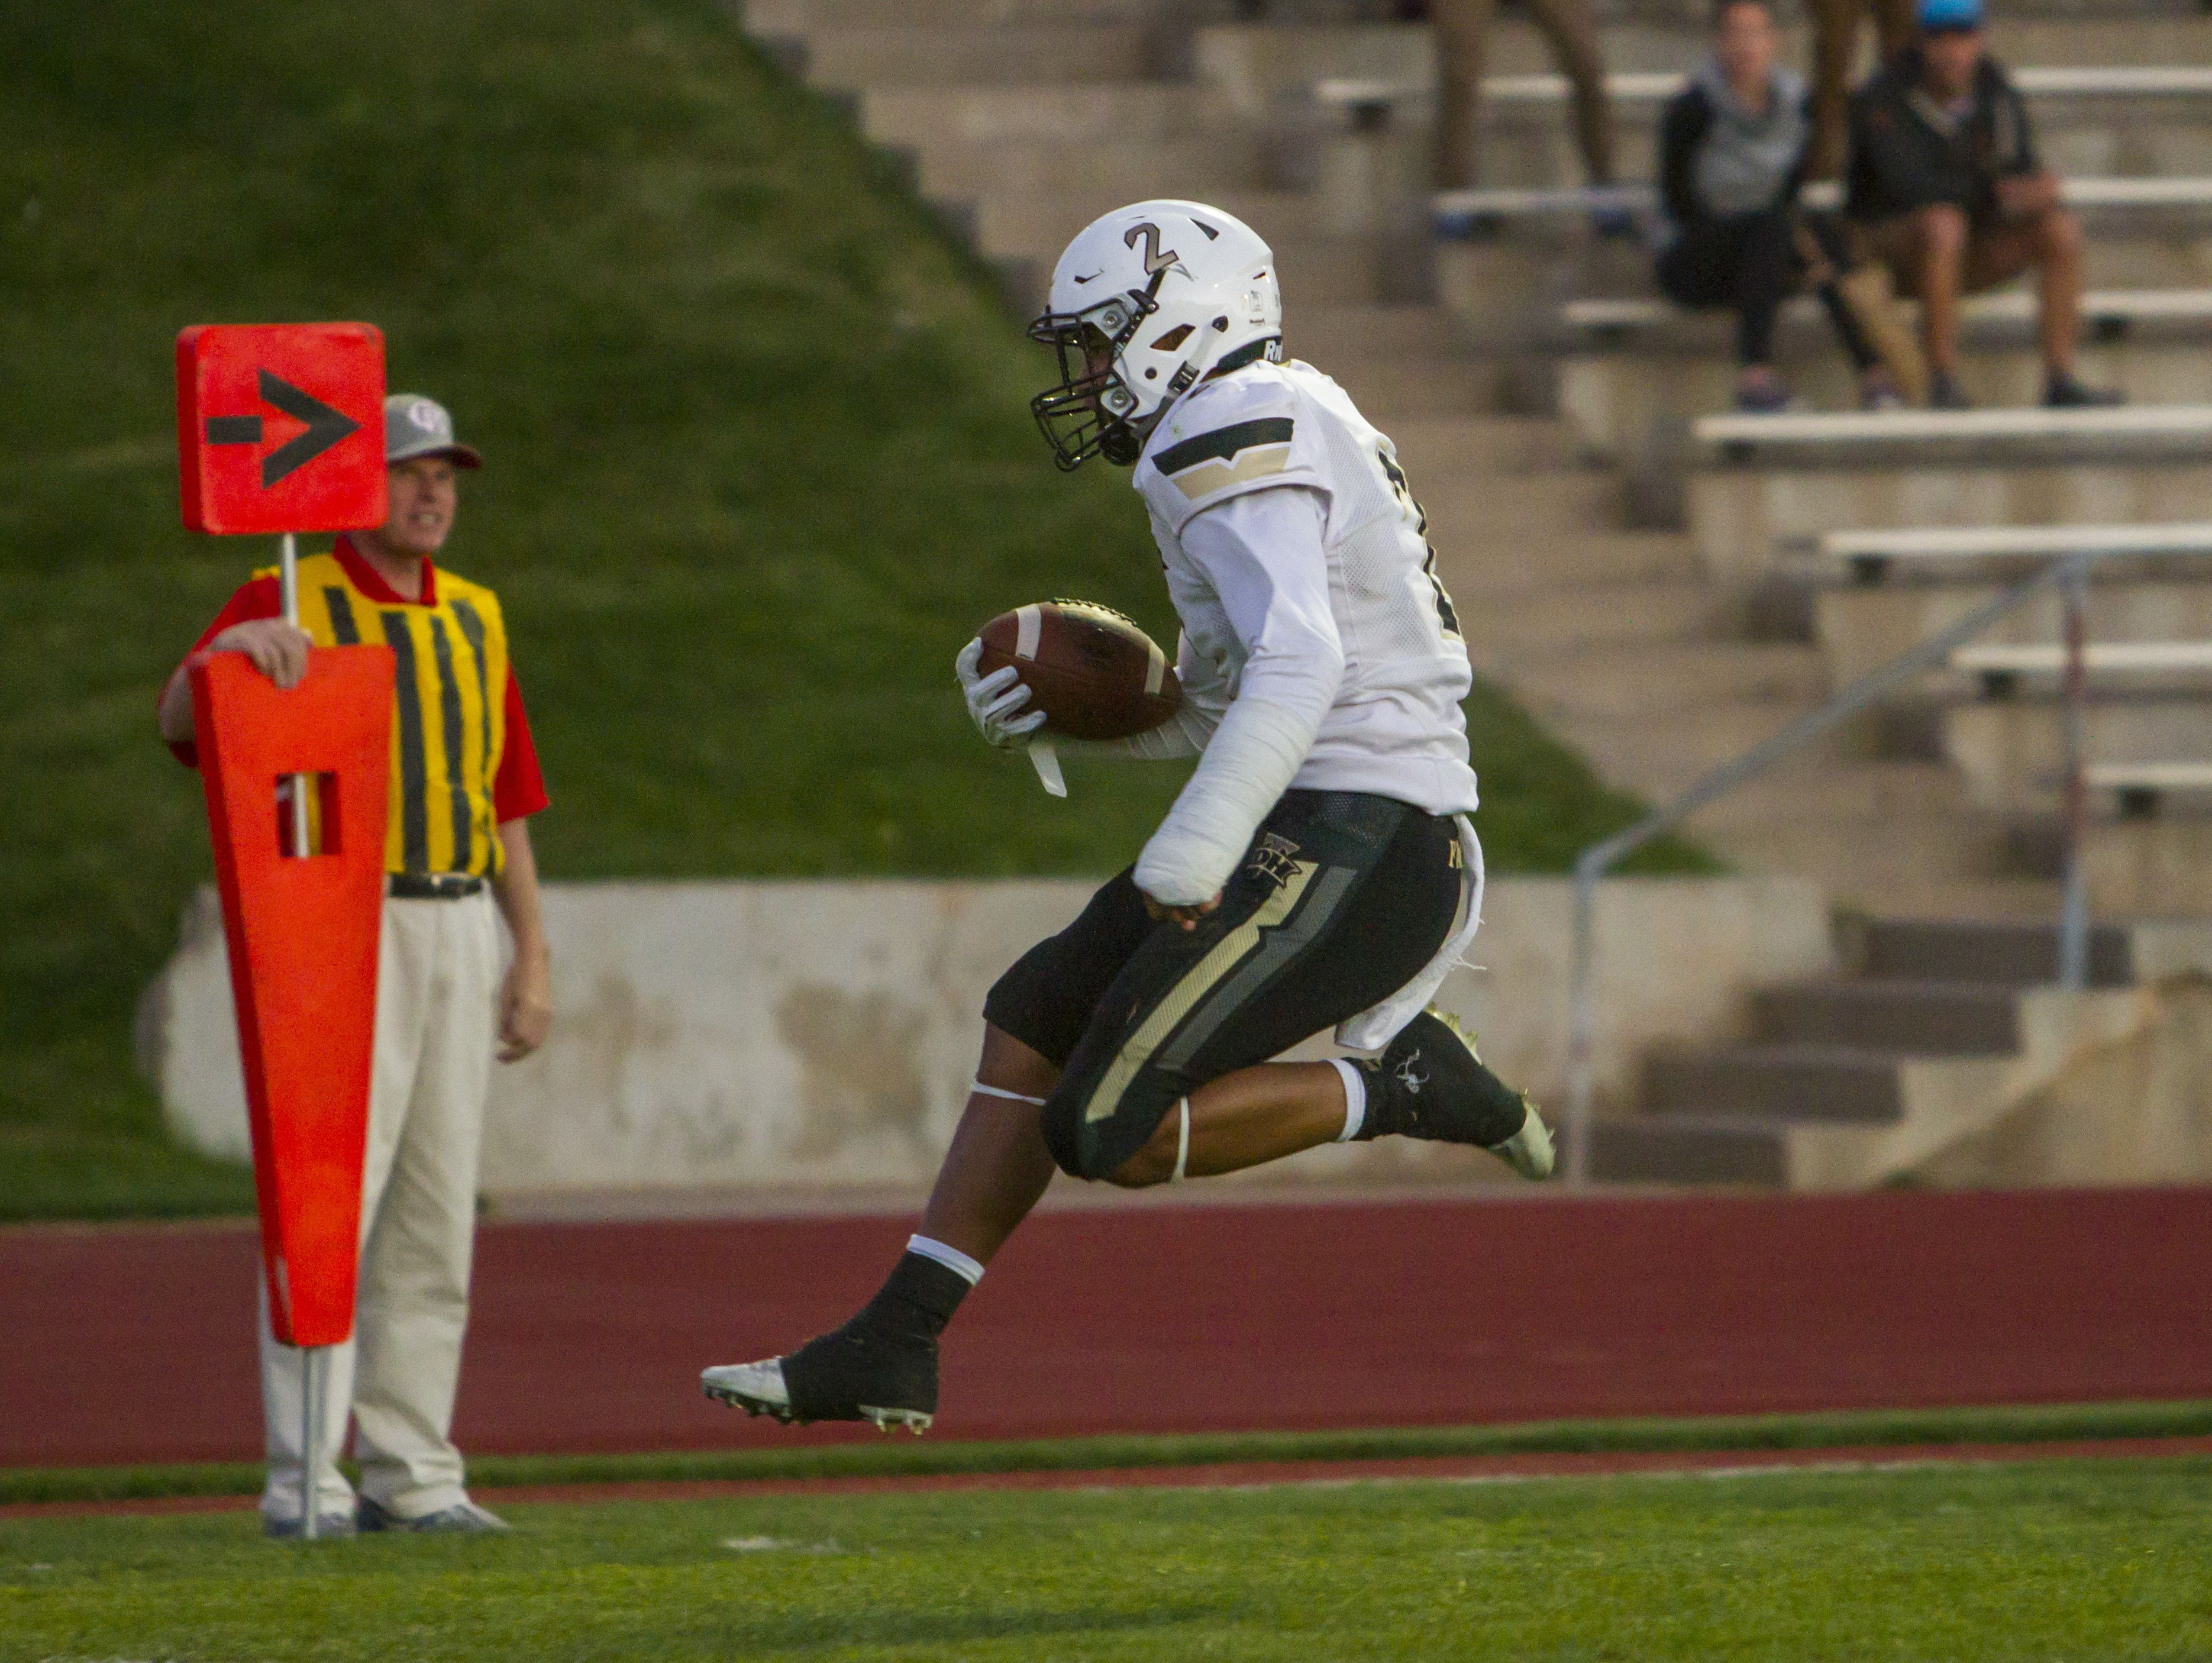 Desert Hills cornerback Nephi Sewell (2) high-steps into the end zone after intercepting a pass during Friday's game against Cedar in Cedar City, Sept. 16, 2016.